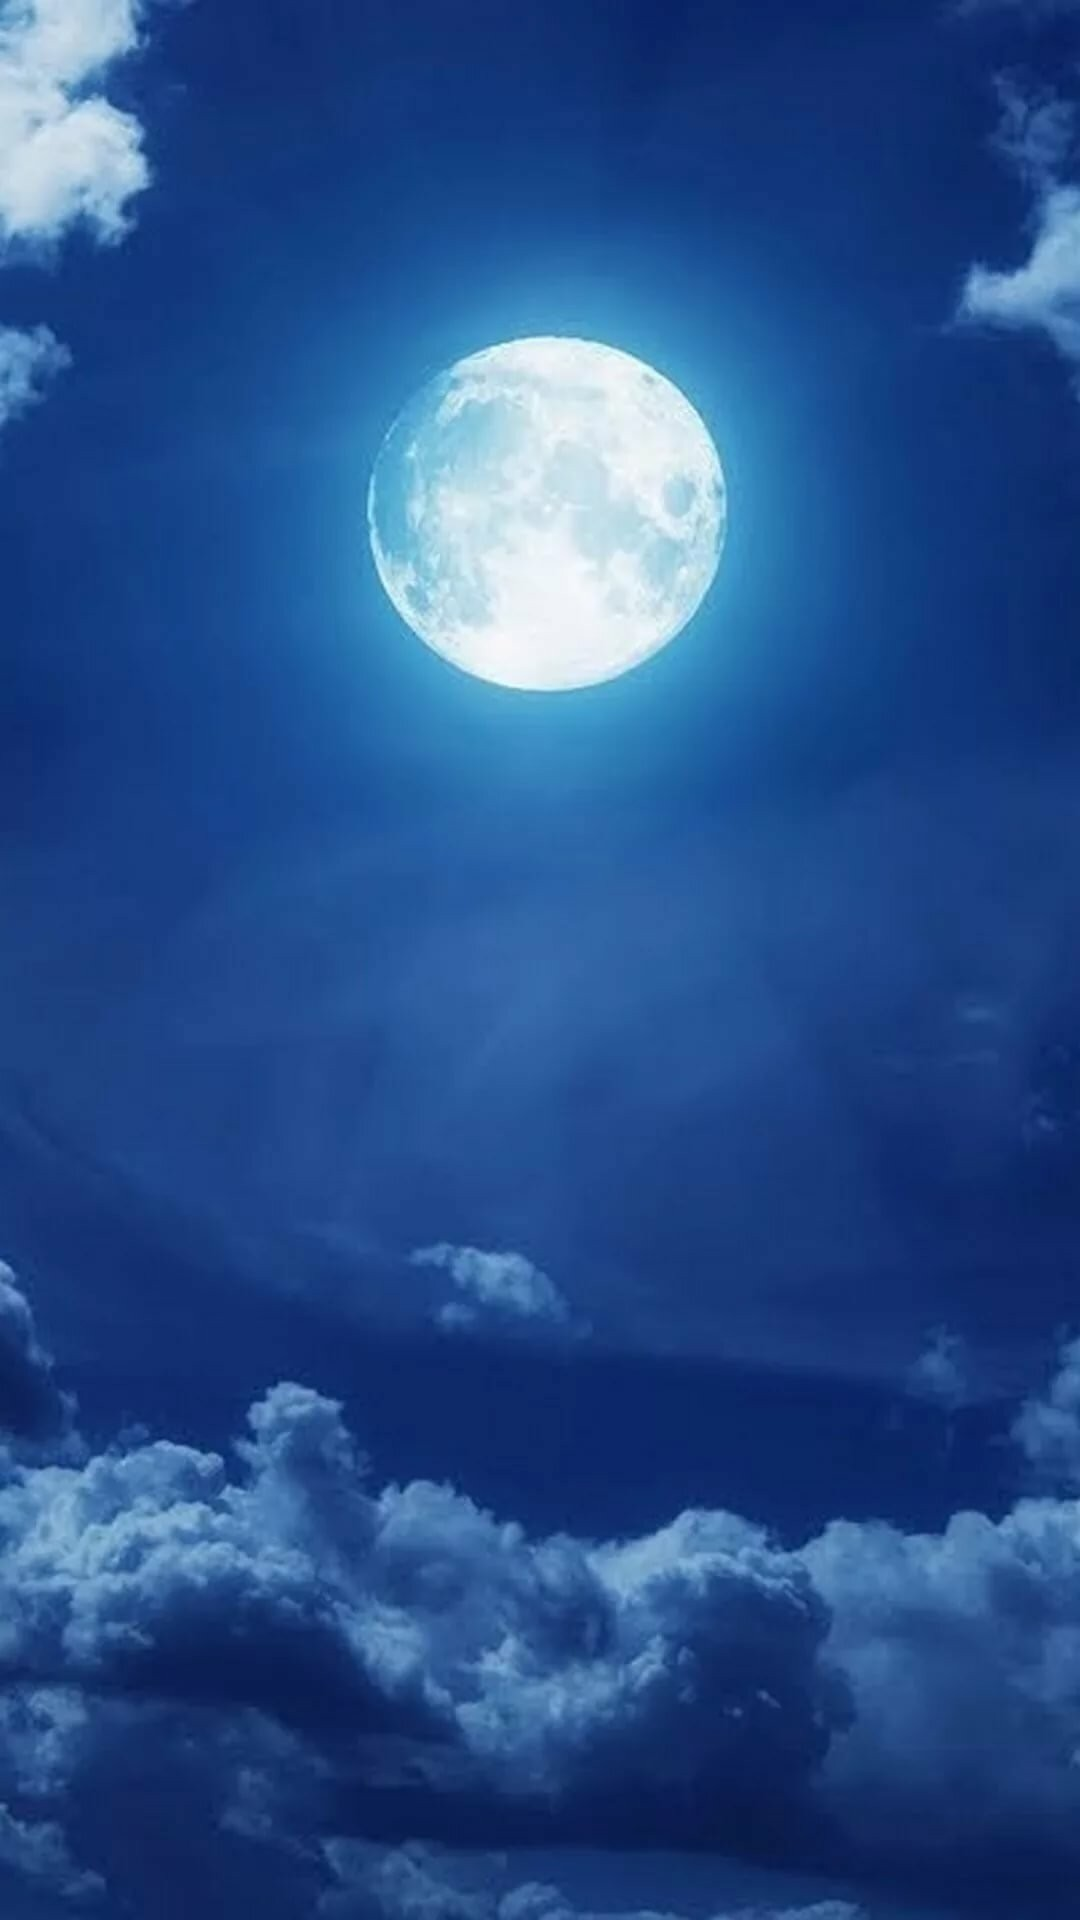 Moon wallpaper for android